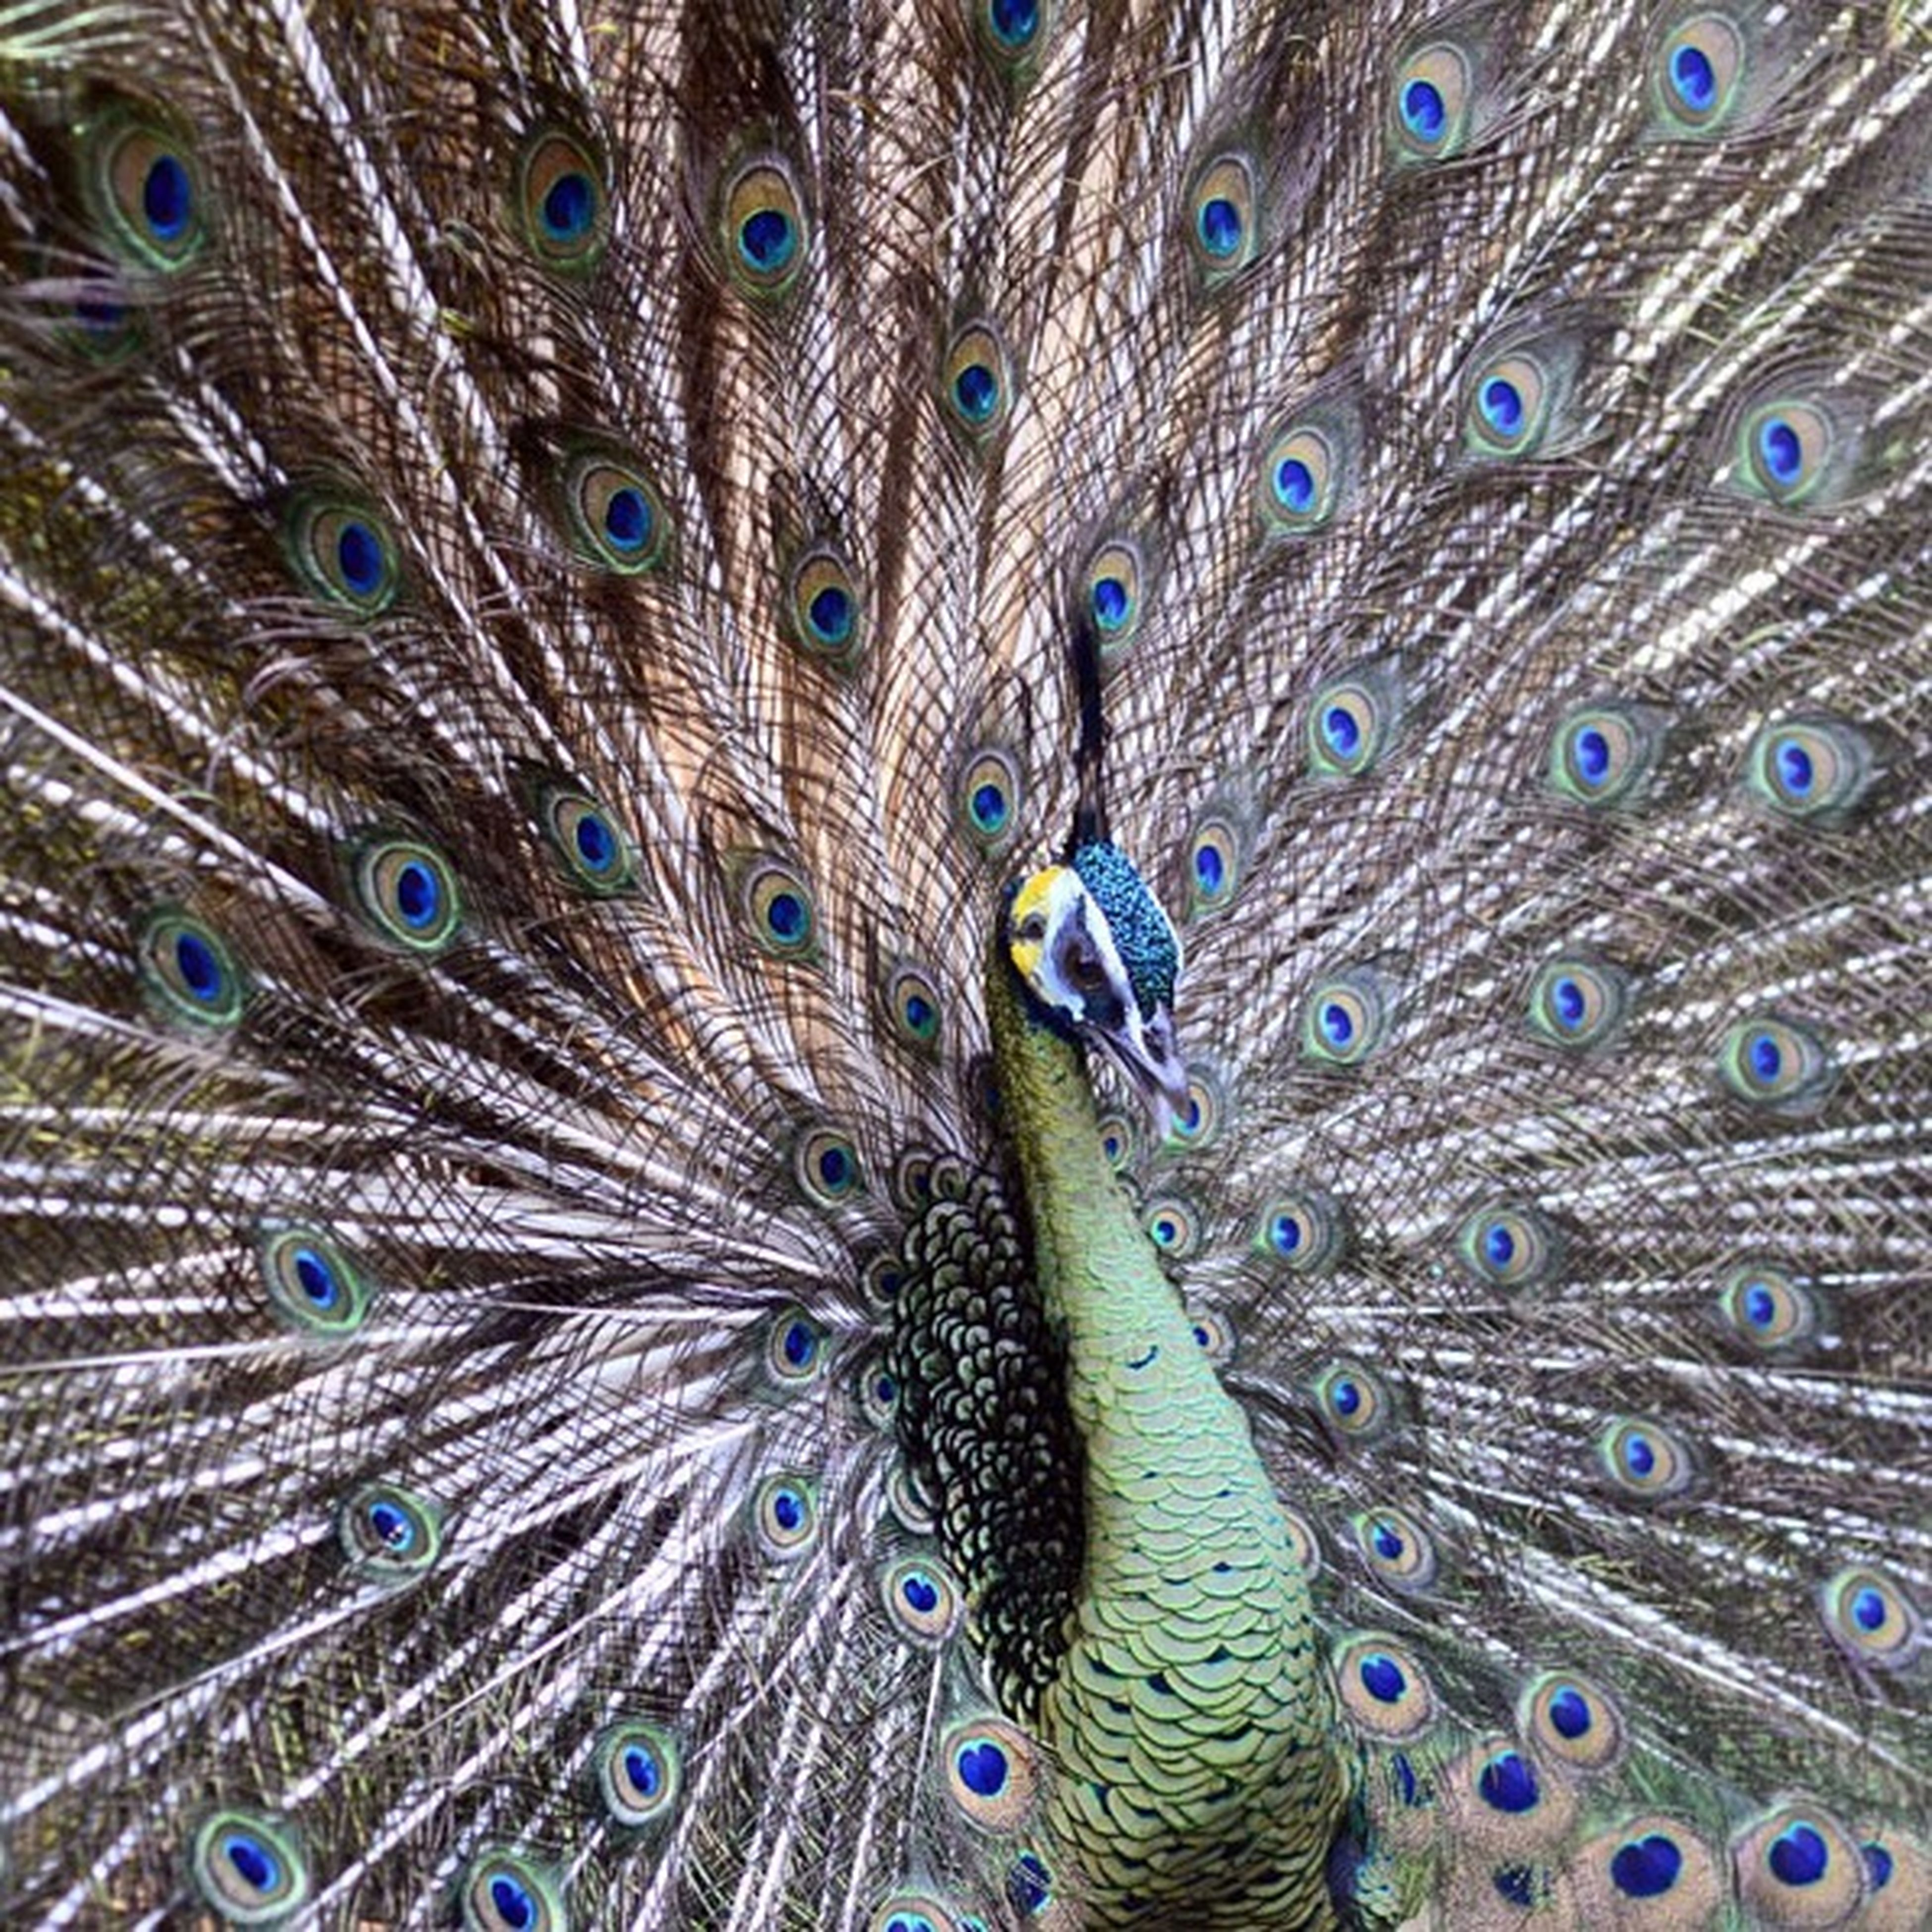 peacock, animal themes, feather, peacock feather, fanned out, one animal, wildlife, full frame, backgrounds, natural pattern, animals in the wild, bird, close-up, blue, male animal, multi colored, animal head, pattern, beauty in nature, purple